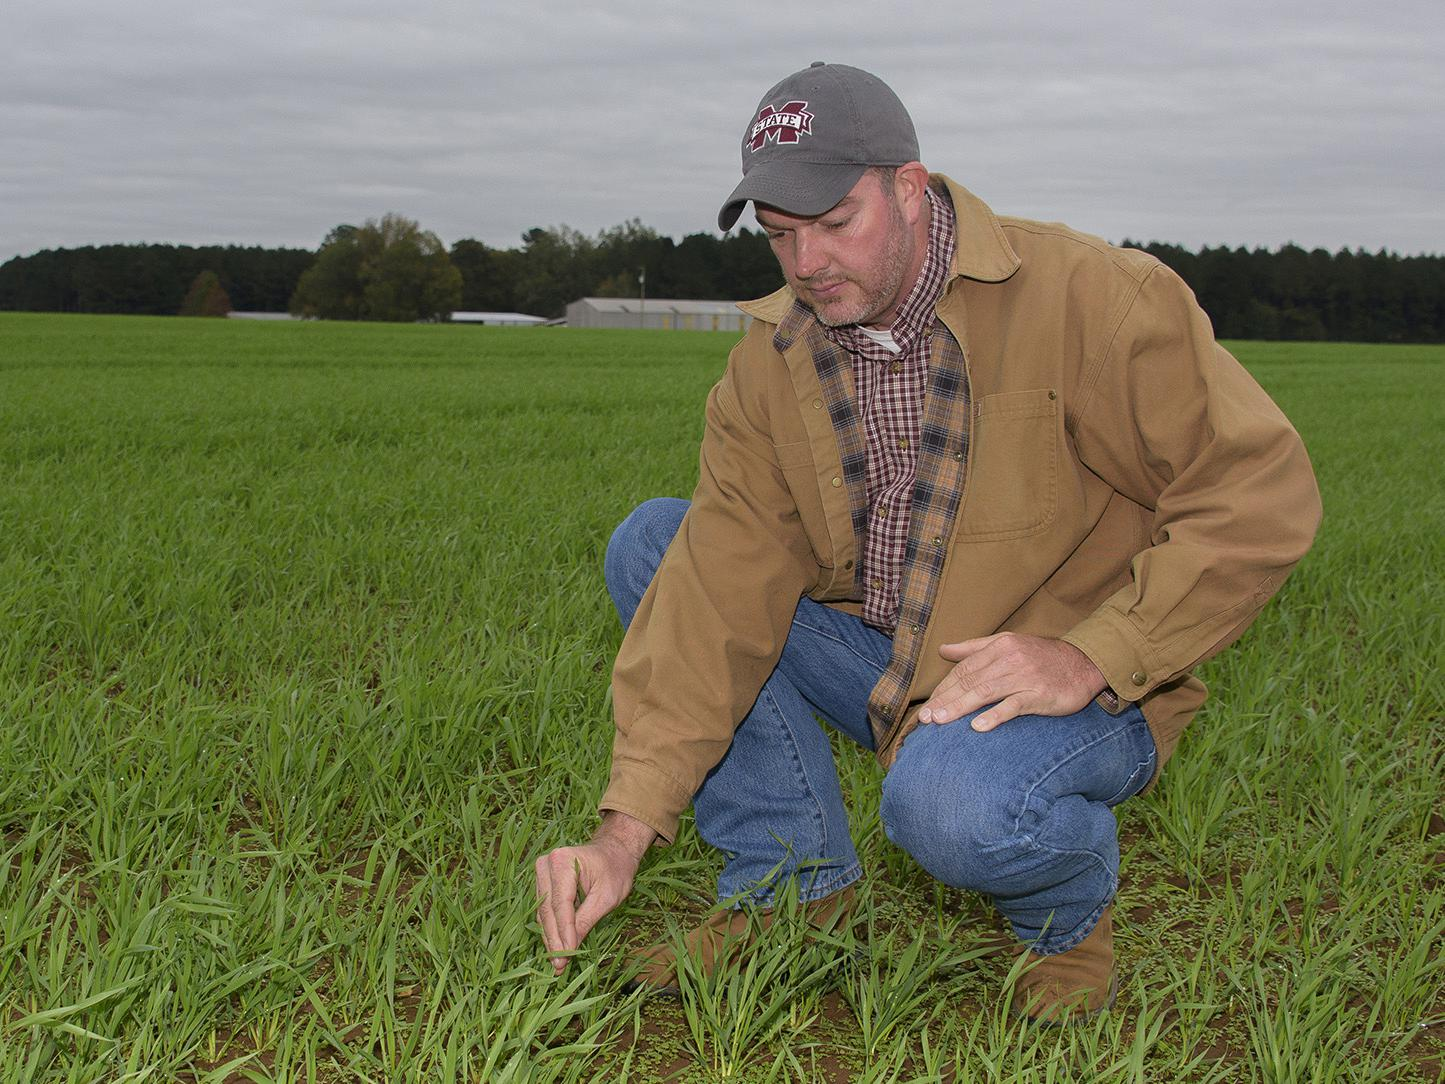 A man in a jacket and baseball cap kneels down to touch small, grass-like plants that cover a field.